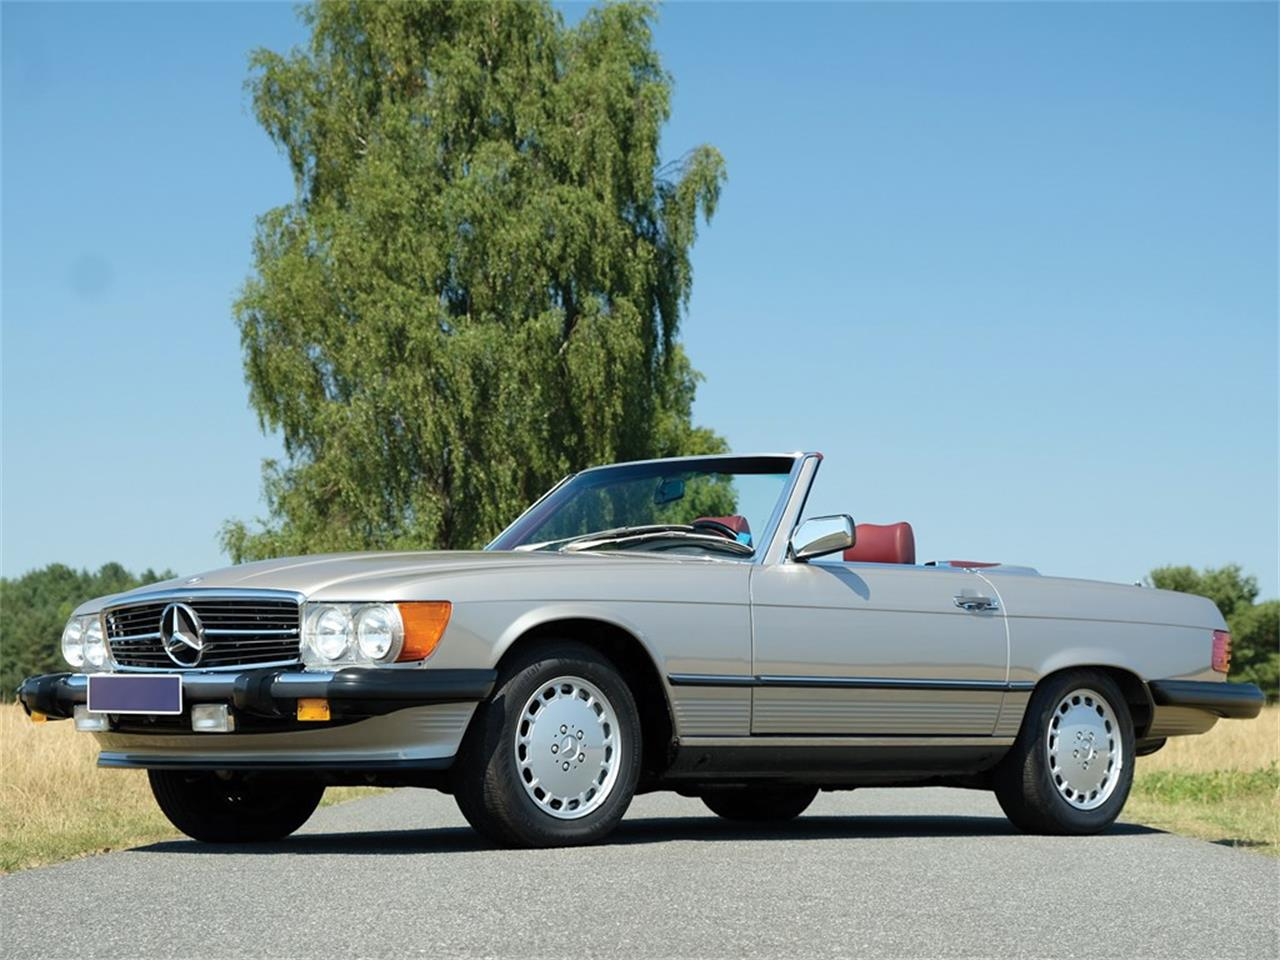 1986 Mercedes-Benz 560SL (CC-1319567) for sale in Essen, Germany